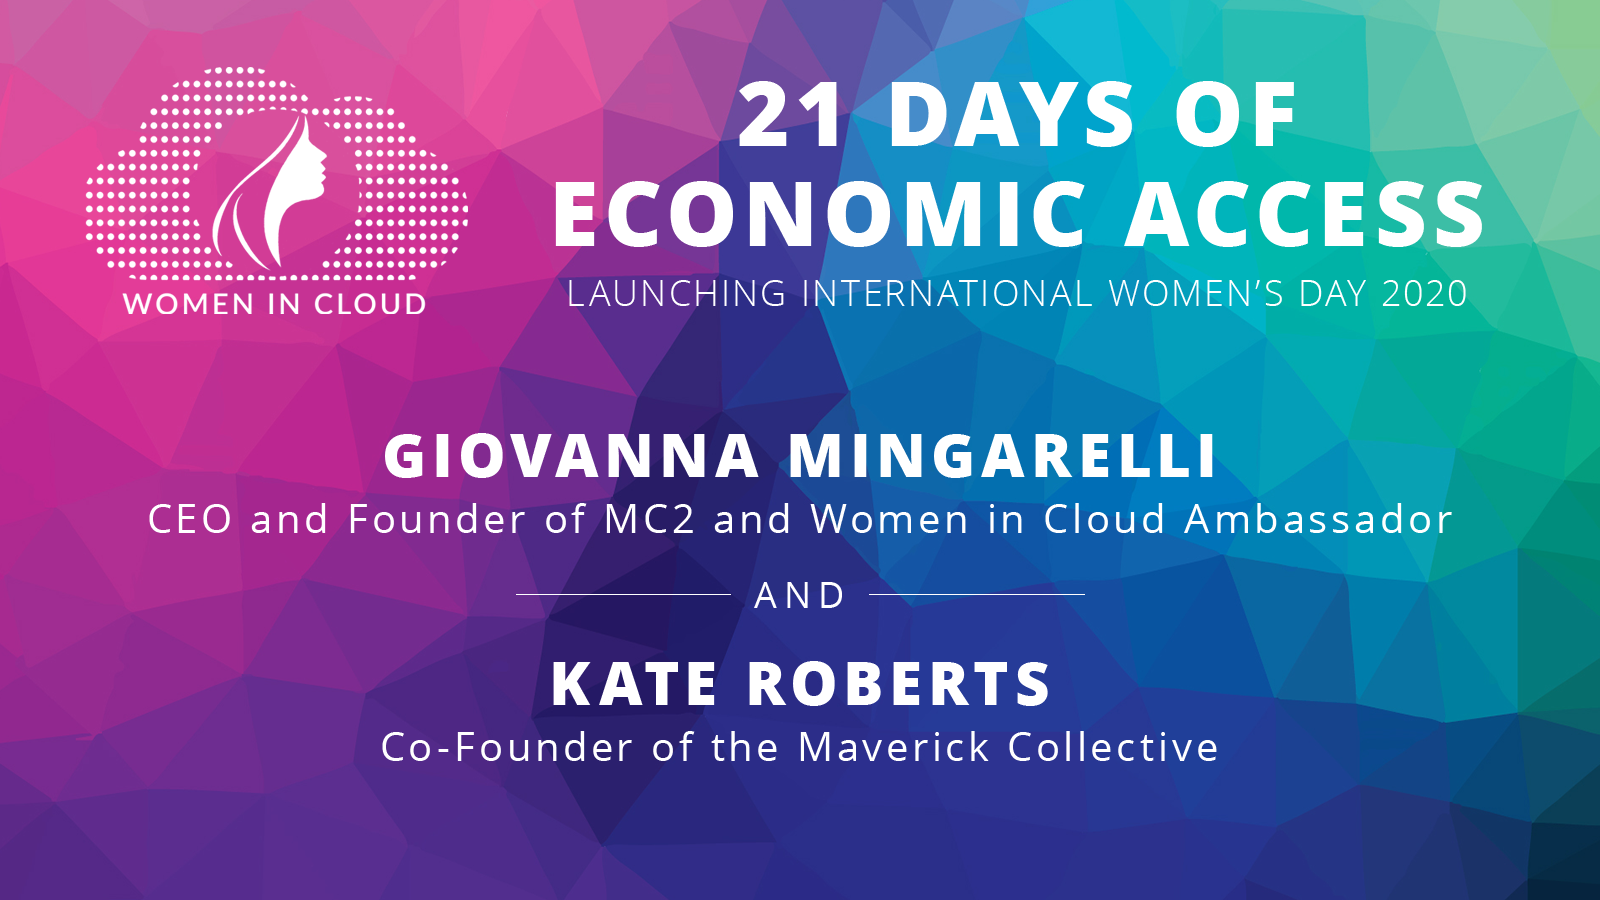 Announcement with the Maverick Collective Co-founder, Kate Roberts, of $1 billion economic access campaign for Women in Cloud at the World Economic Forum's Annual Meeting in Davos (January 23, 2020)